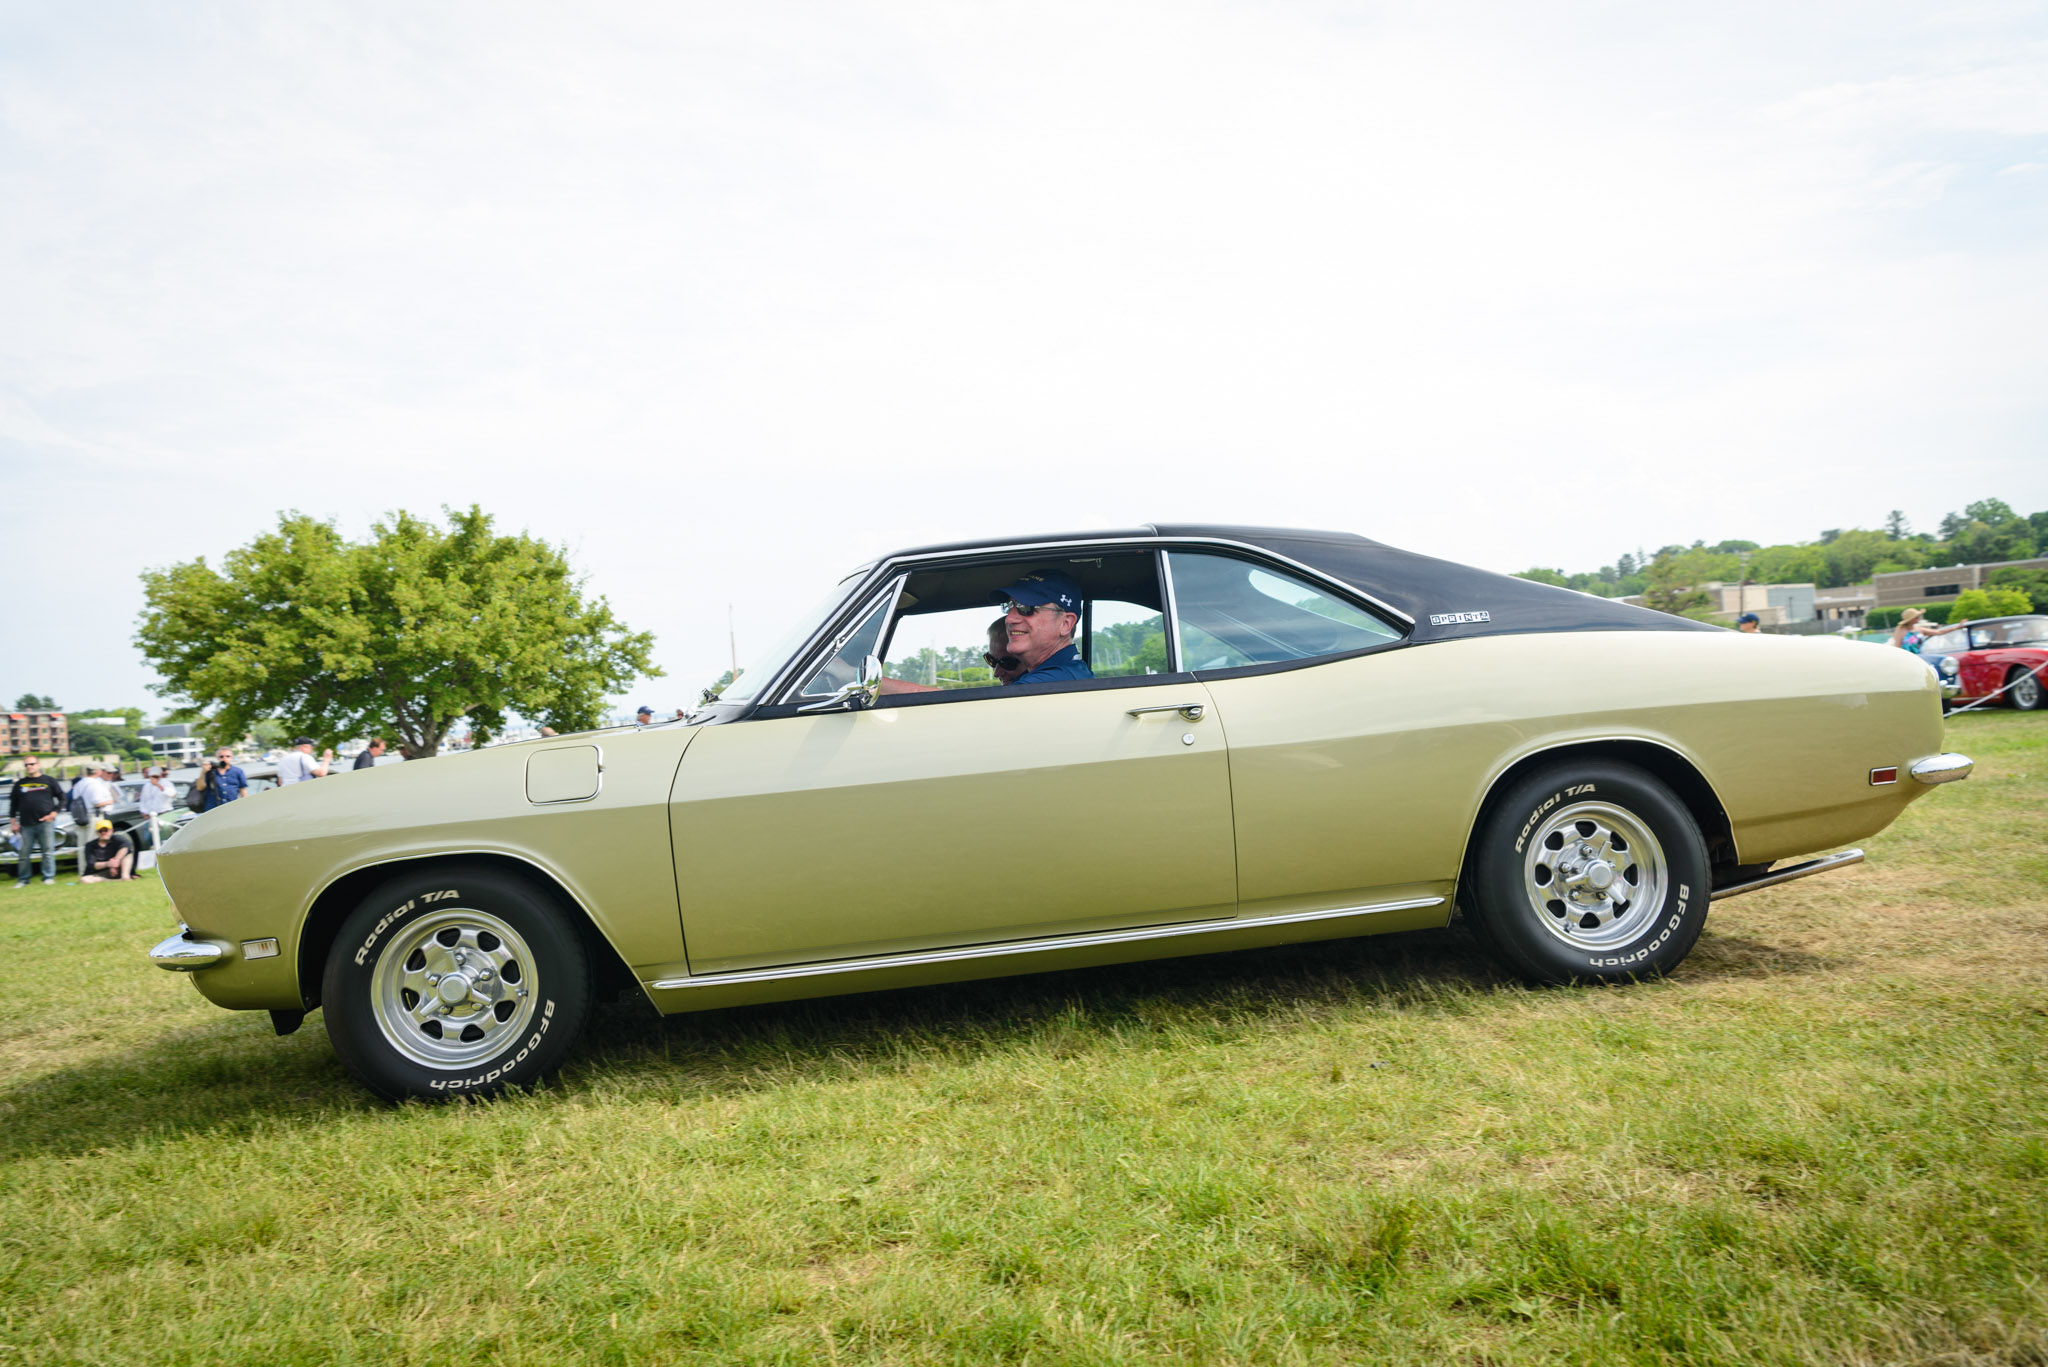 1968 Corvair Corsa Fitch Sprint Side